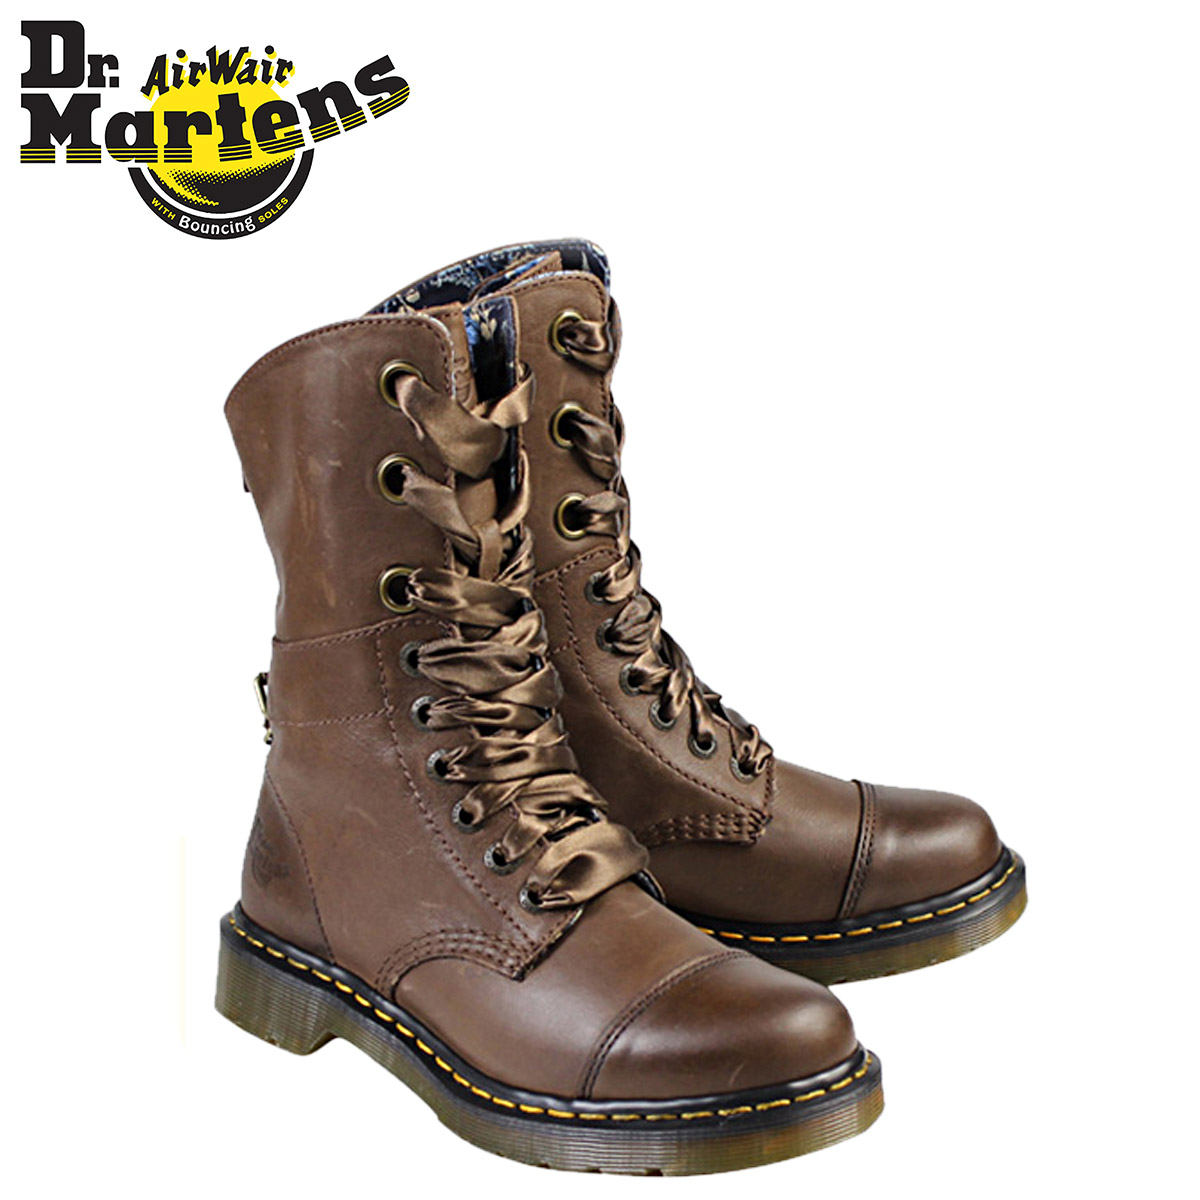 Whats up Sports  Dr.Martens Martens 9-hole boots 2WAY AIMILIE R ... 95db04224